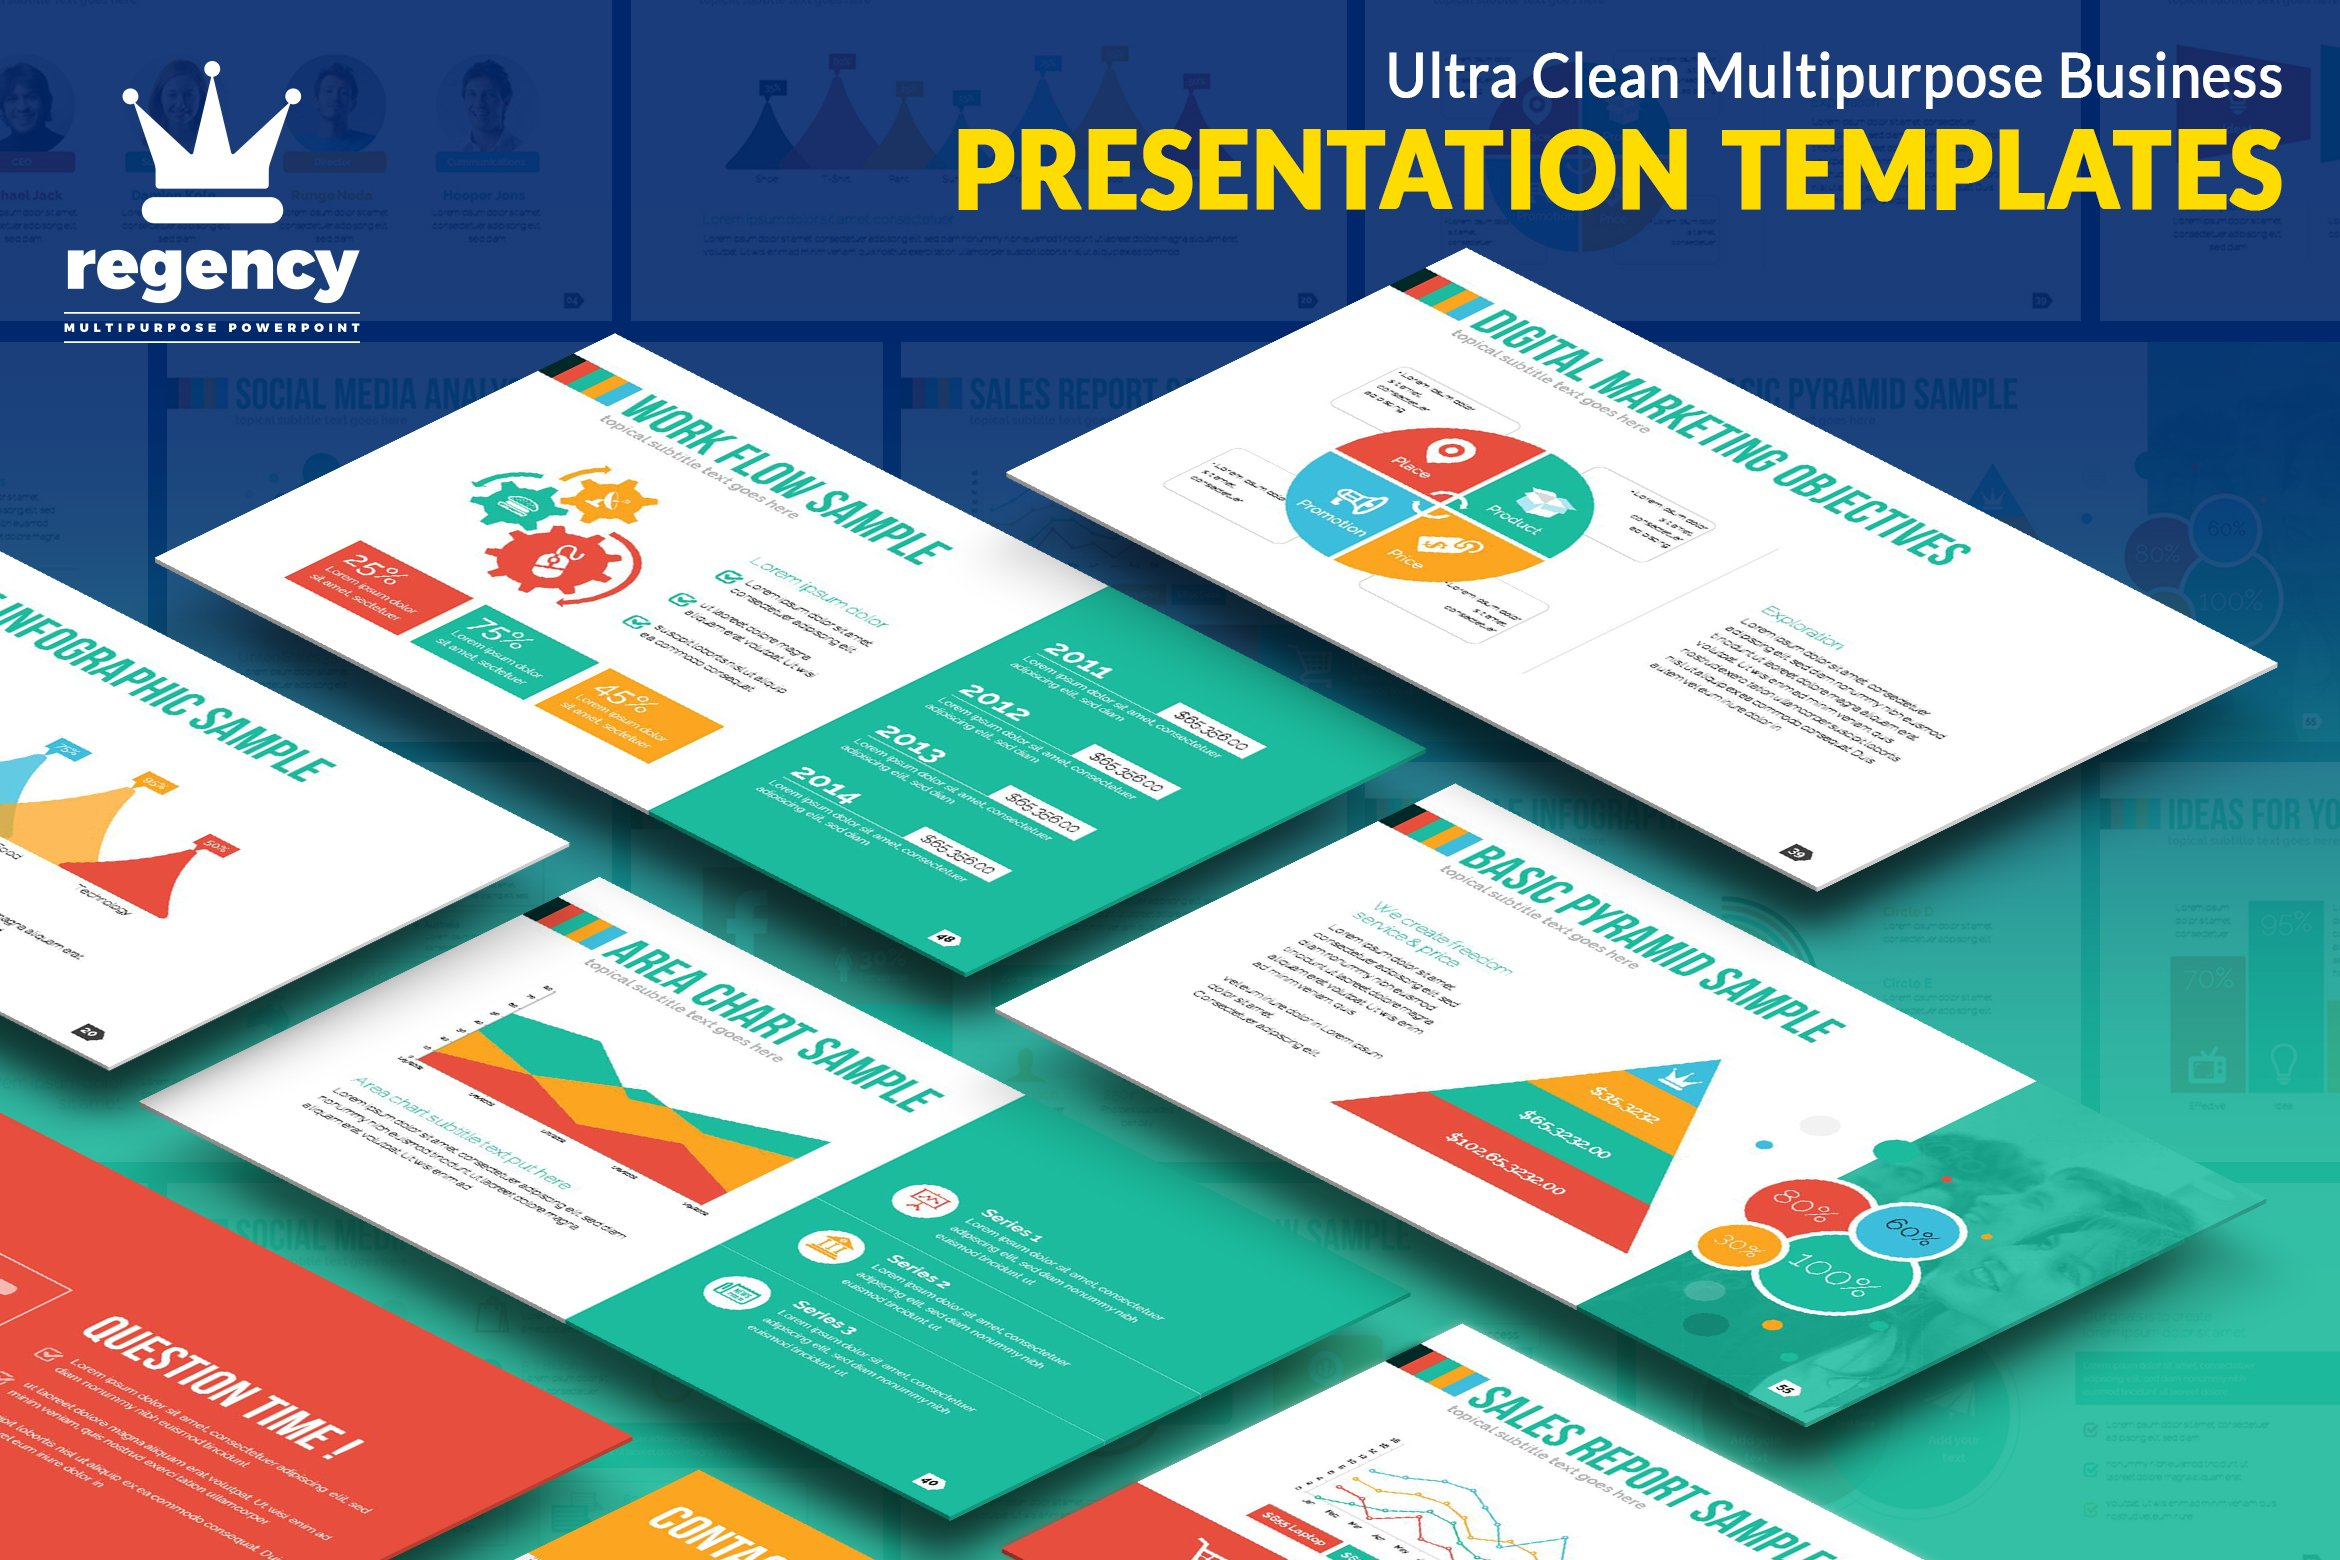 Clean business presentation presentation templates creative market cheaphphosting